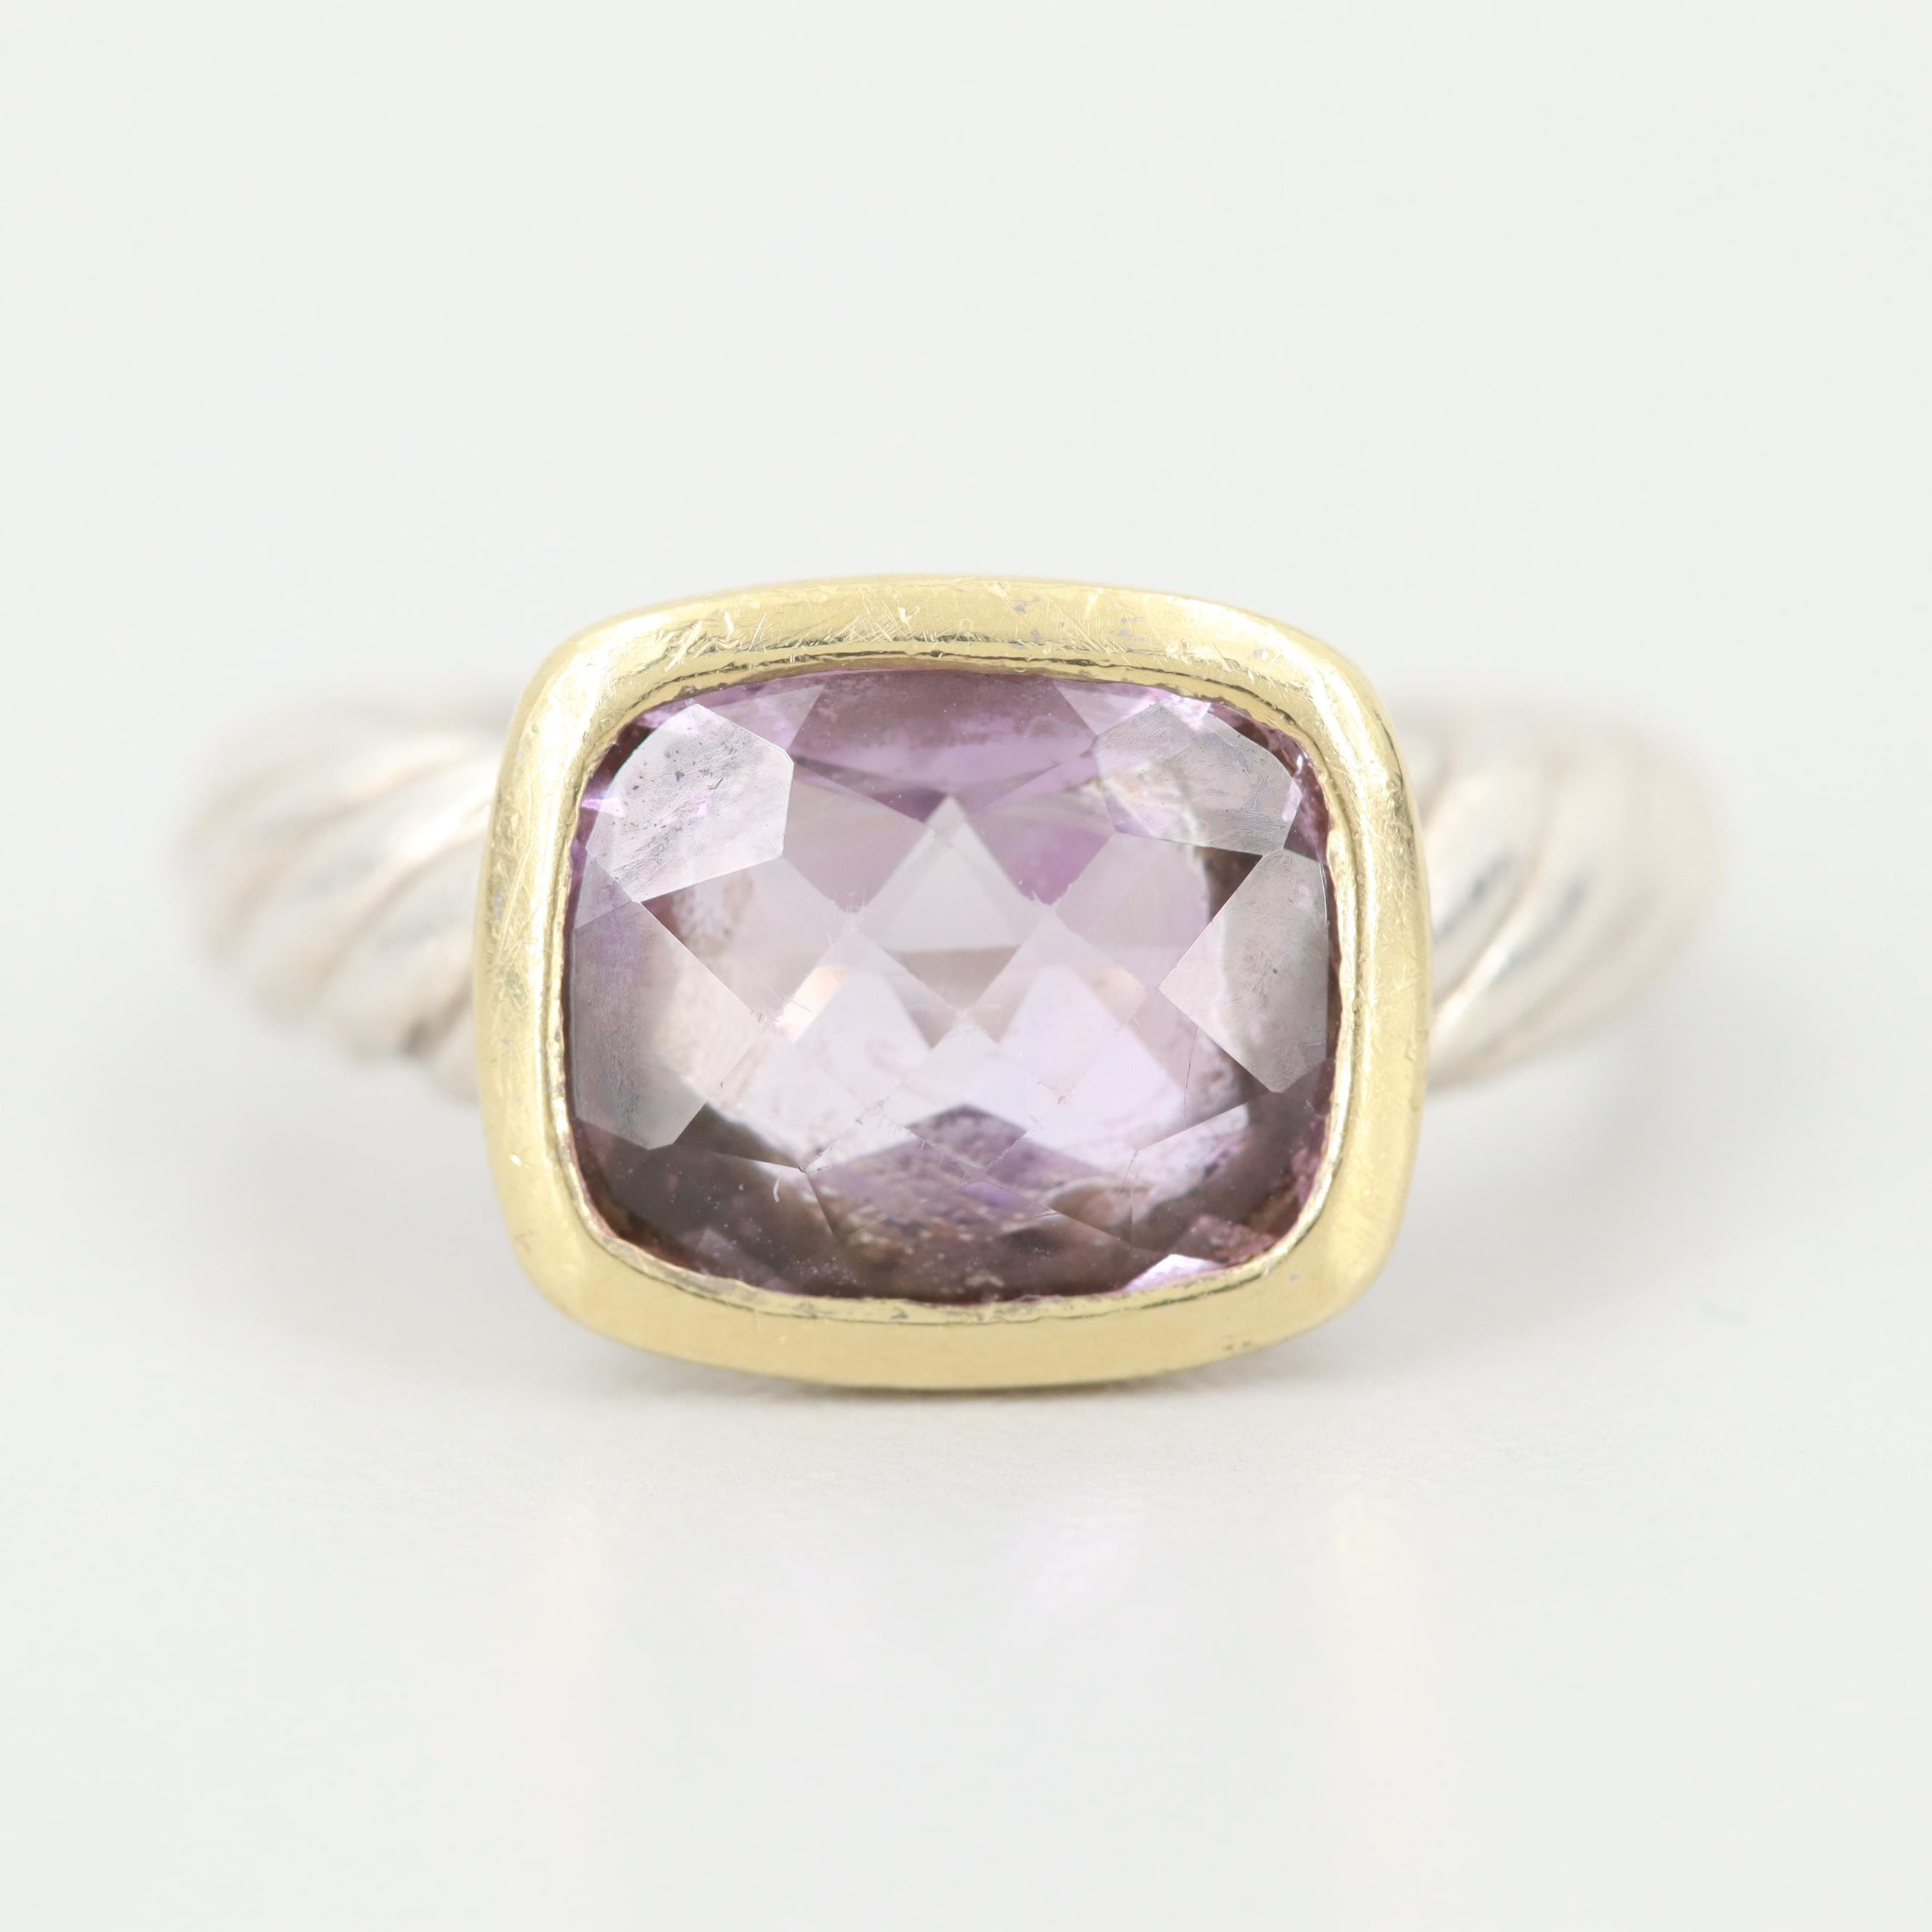 David Yurman Sterling Silver Amethyst Ring With 18K Yellow Gold Accent